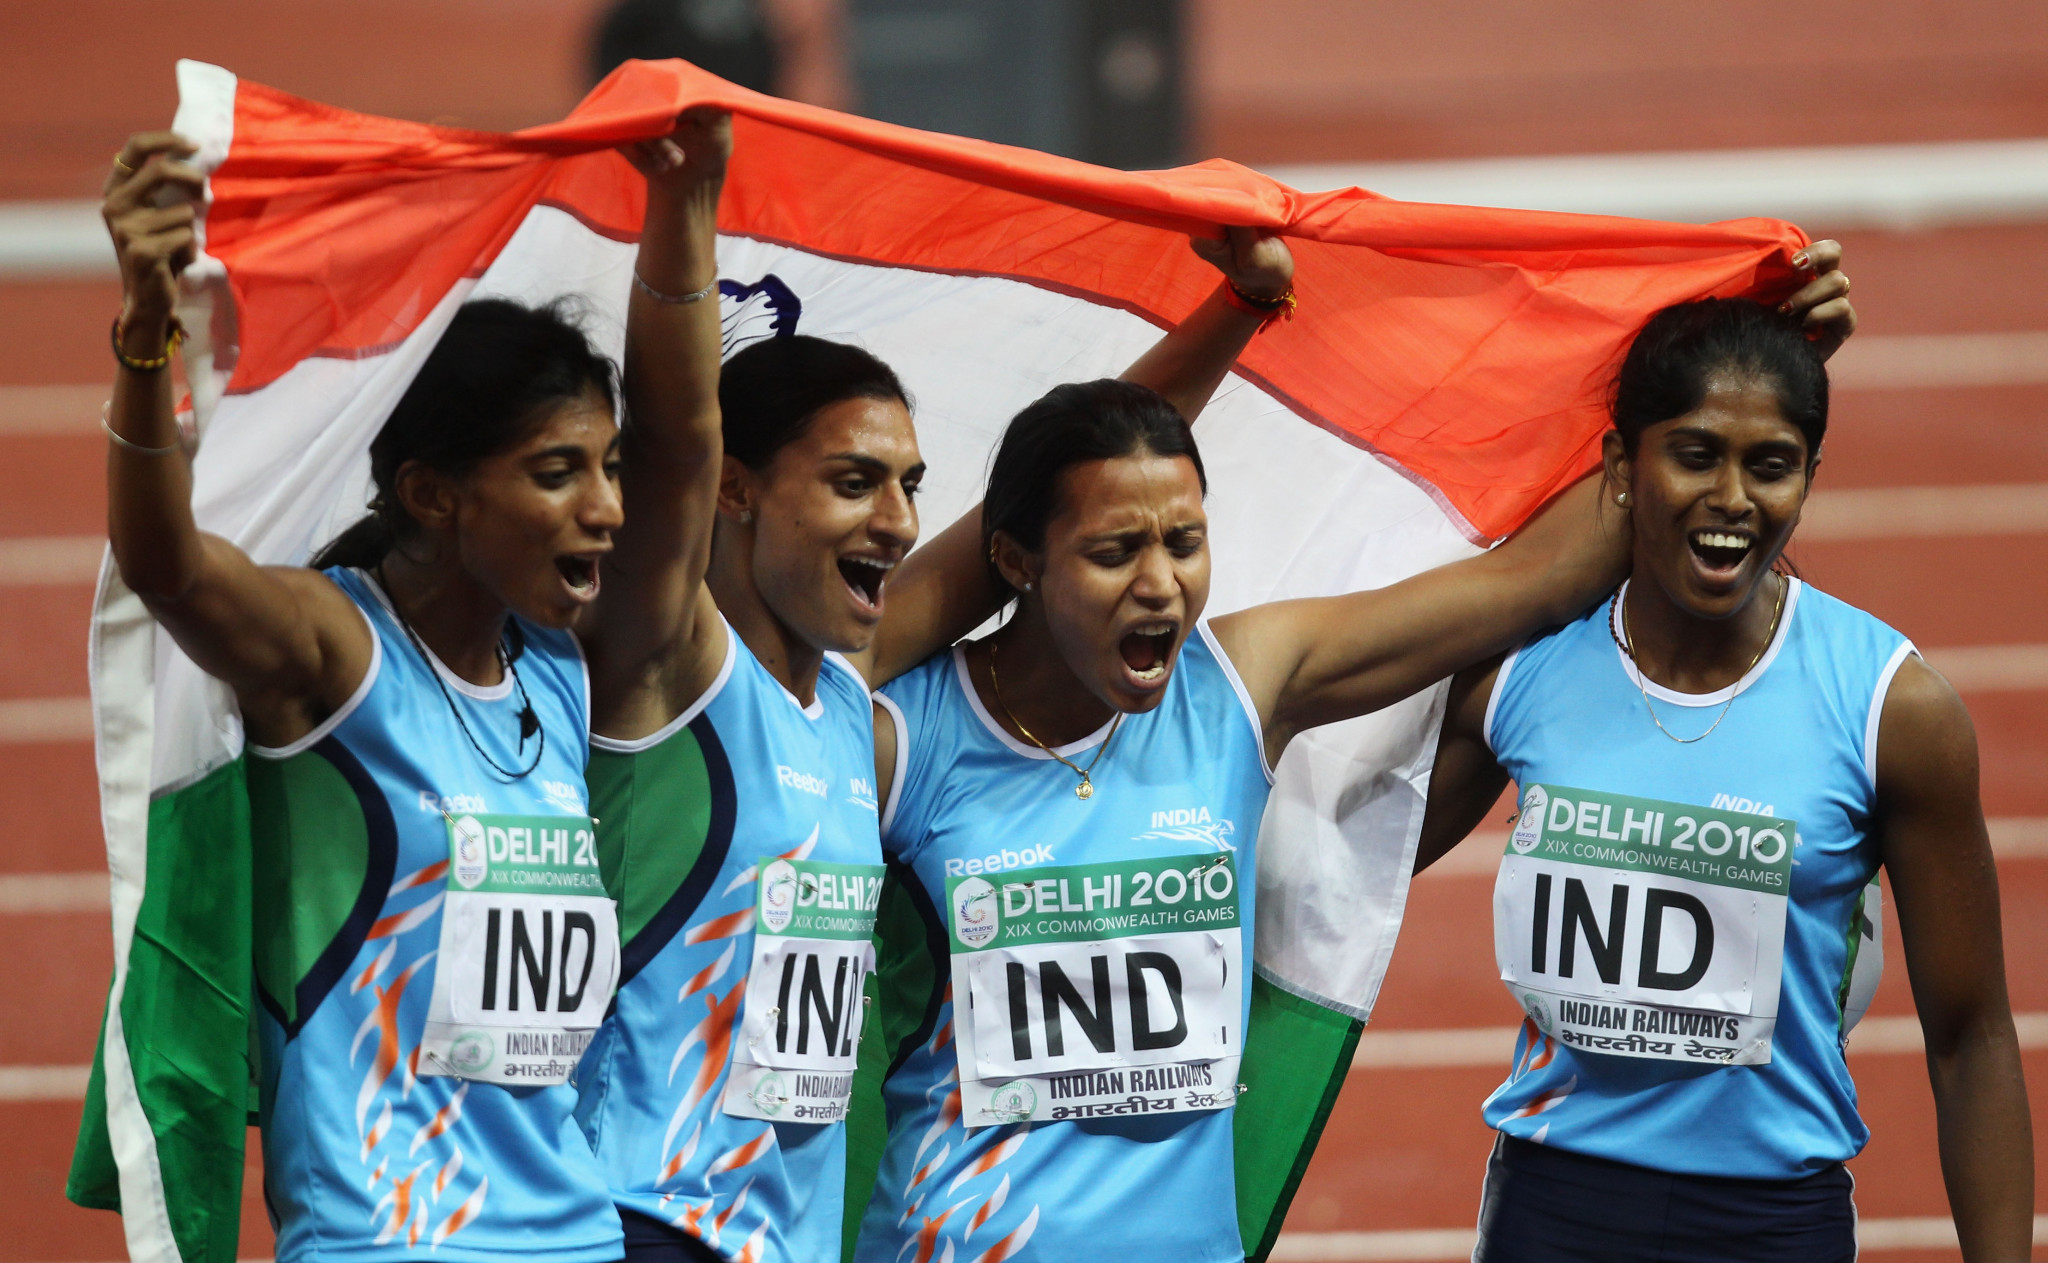 Three members of the gold medal winning 4x 400m relay team at the Delhi 2010 Commonwealth Games have since failed drug tests ©Getty Images